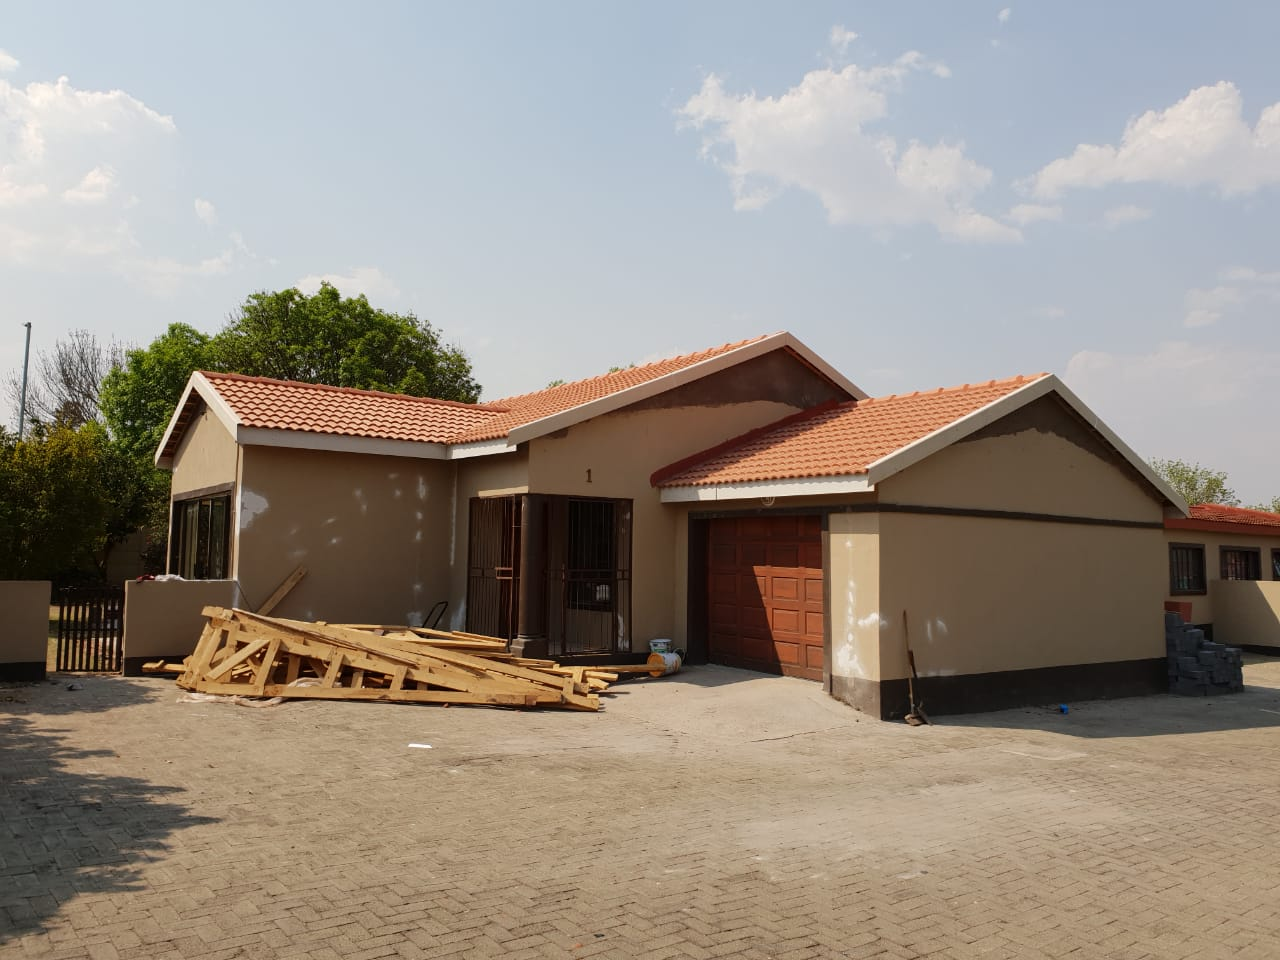 Complete Re-Roofing with Concrete Tiles